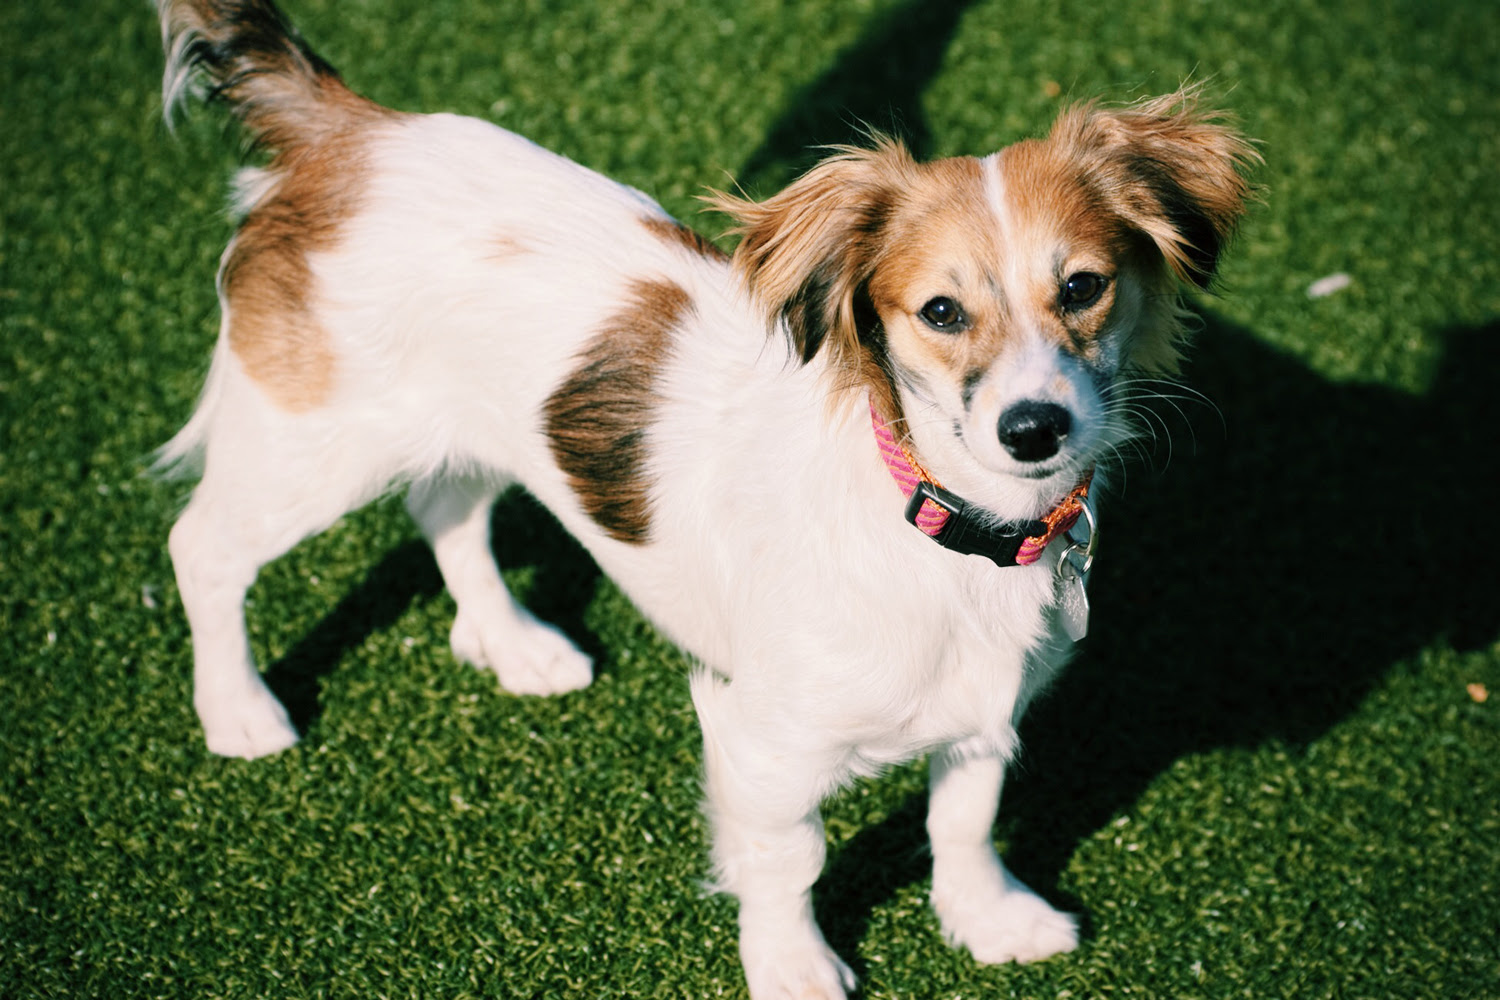 Cute Mixed Dog Breeds  www.pixshark.com  Images Galleries With A Bite!